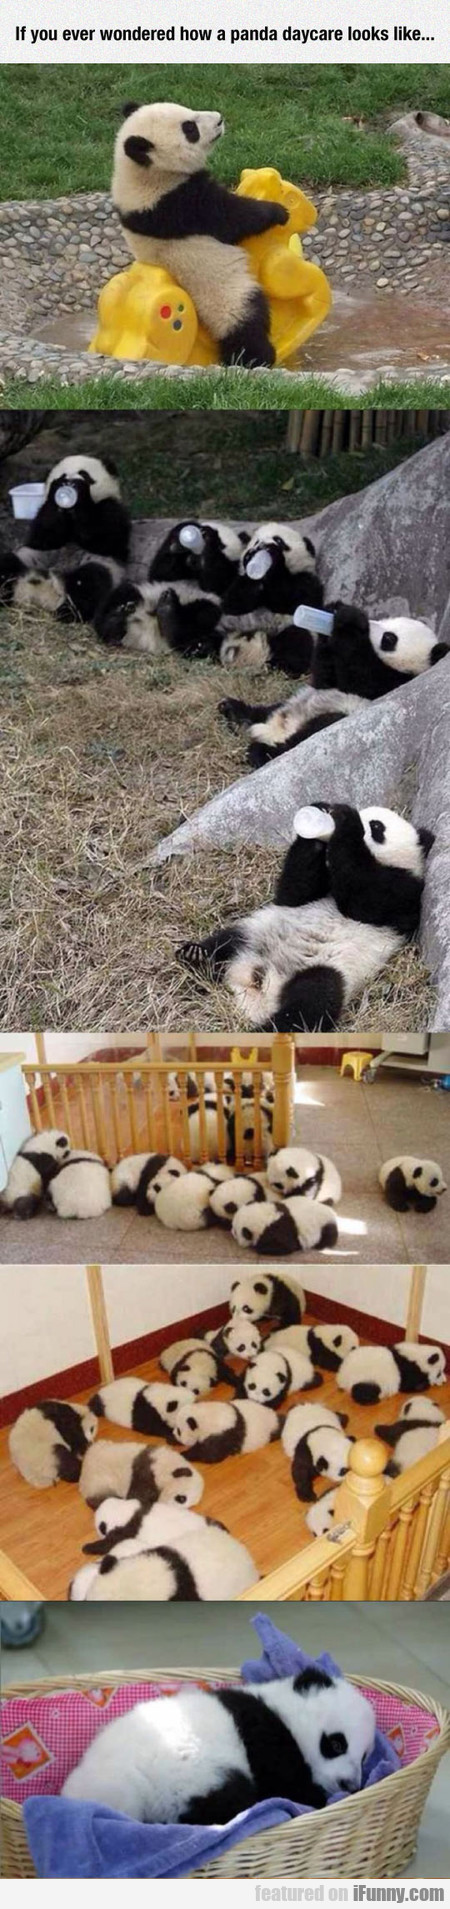 If You Ever Wondered How A Panda Daycare Looks...